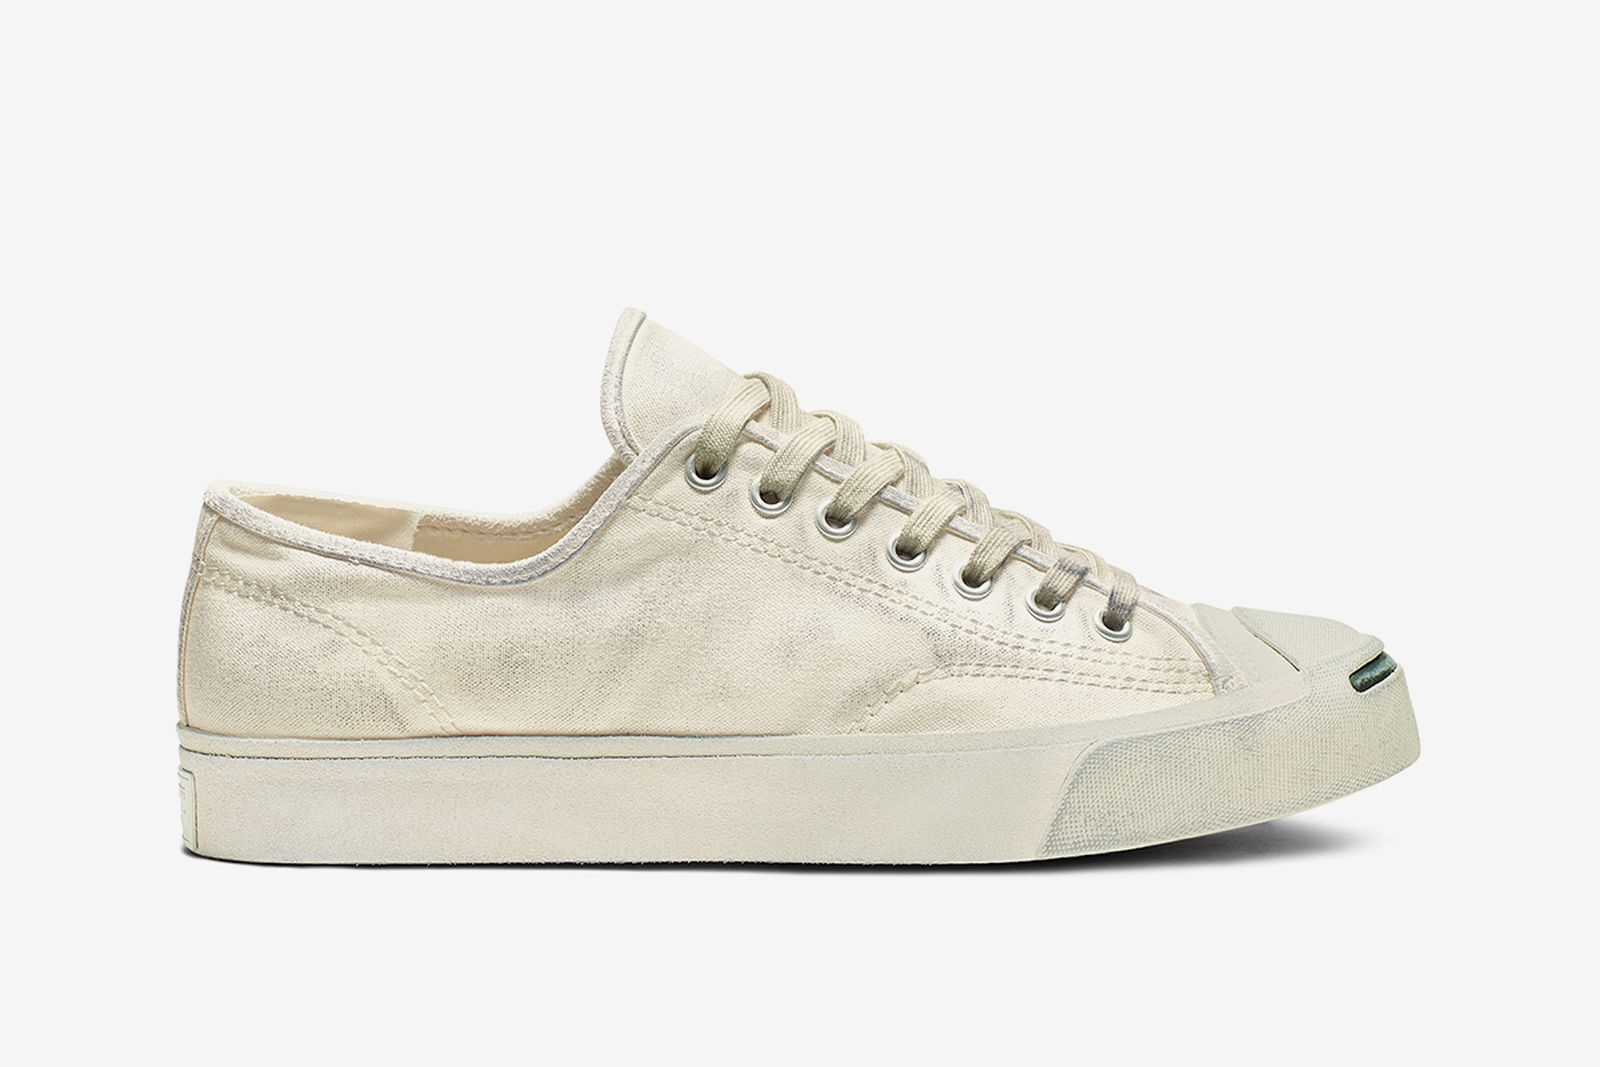 converse ss19 collection release date price Converse Chuck 70 Converse ERX 260 Mid converse jack purcell